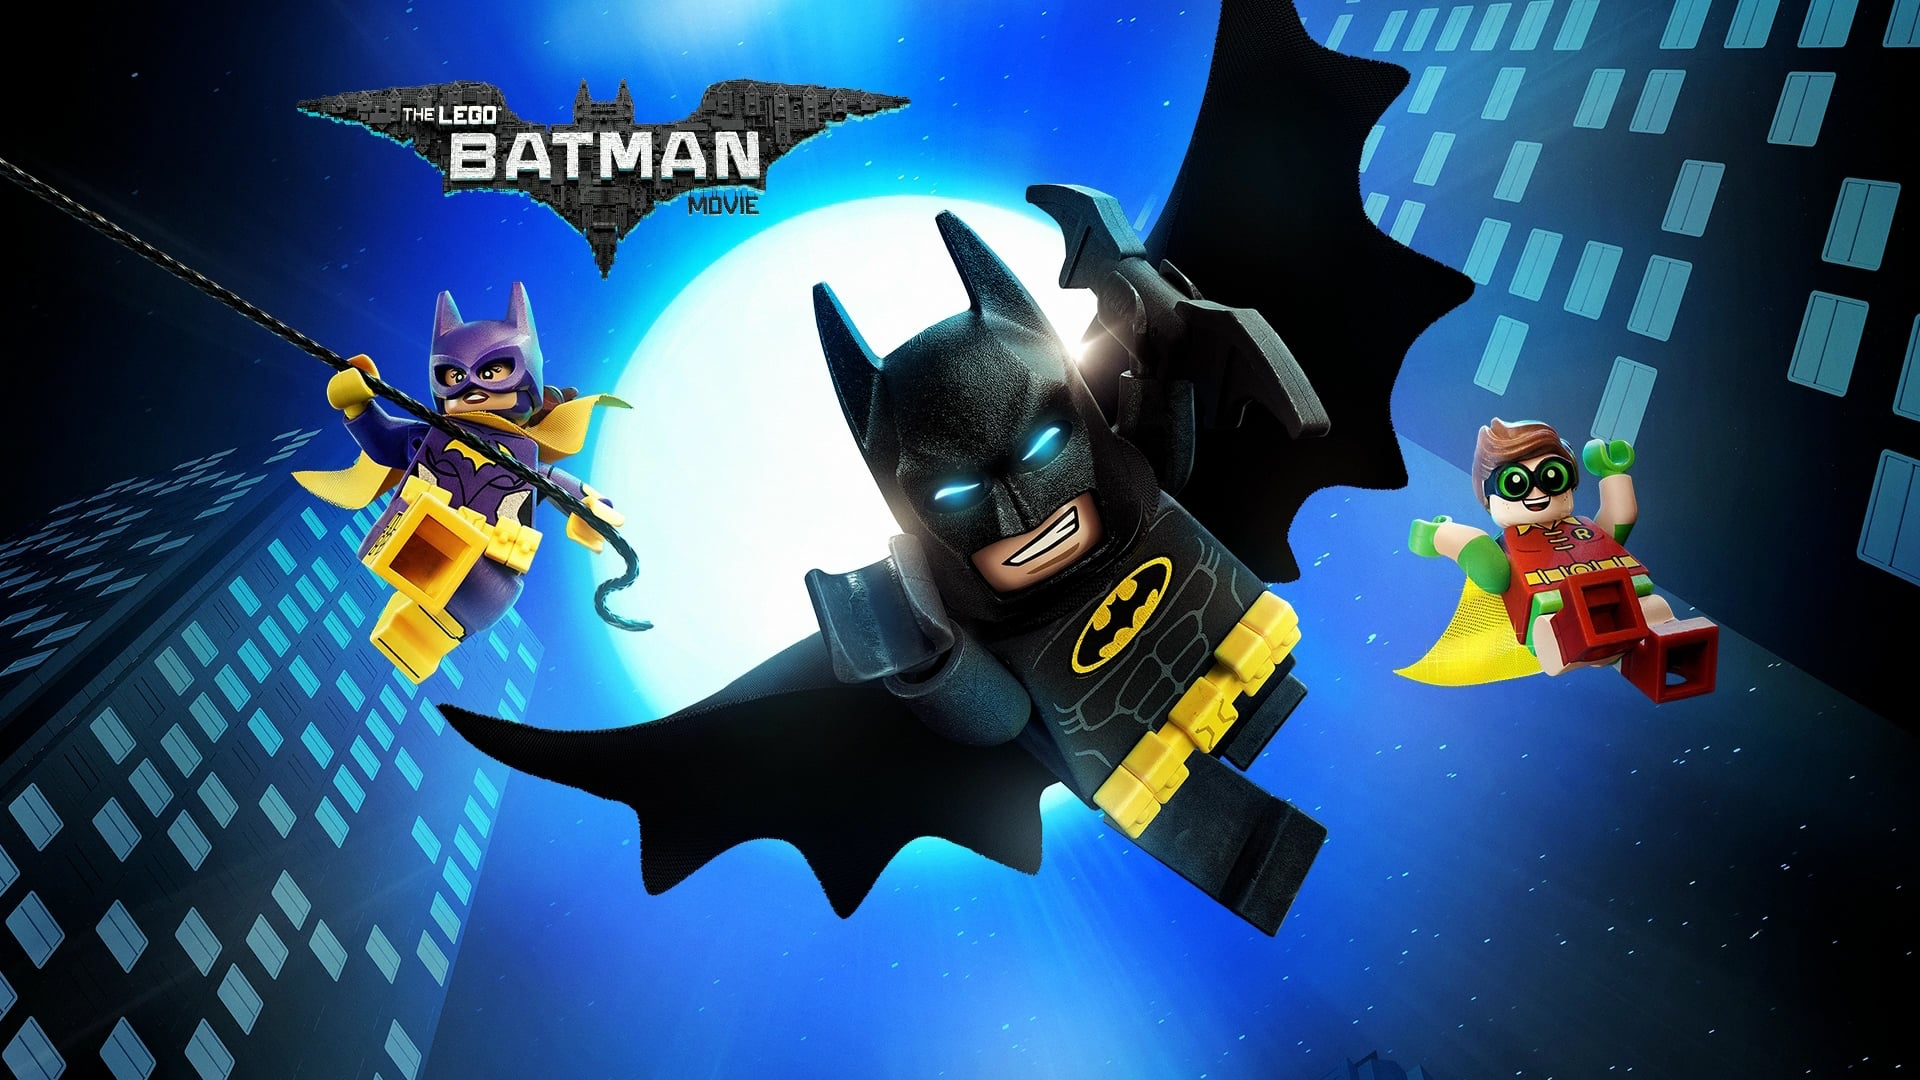 Lego Batman, Le Film Streaming VF en Français …